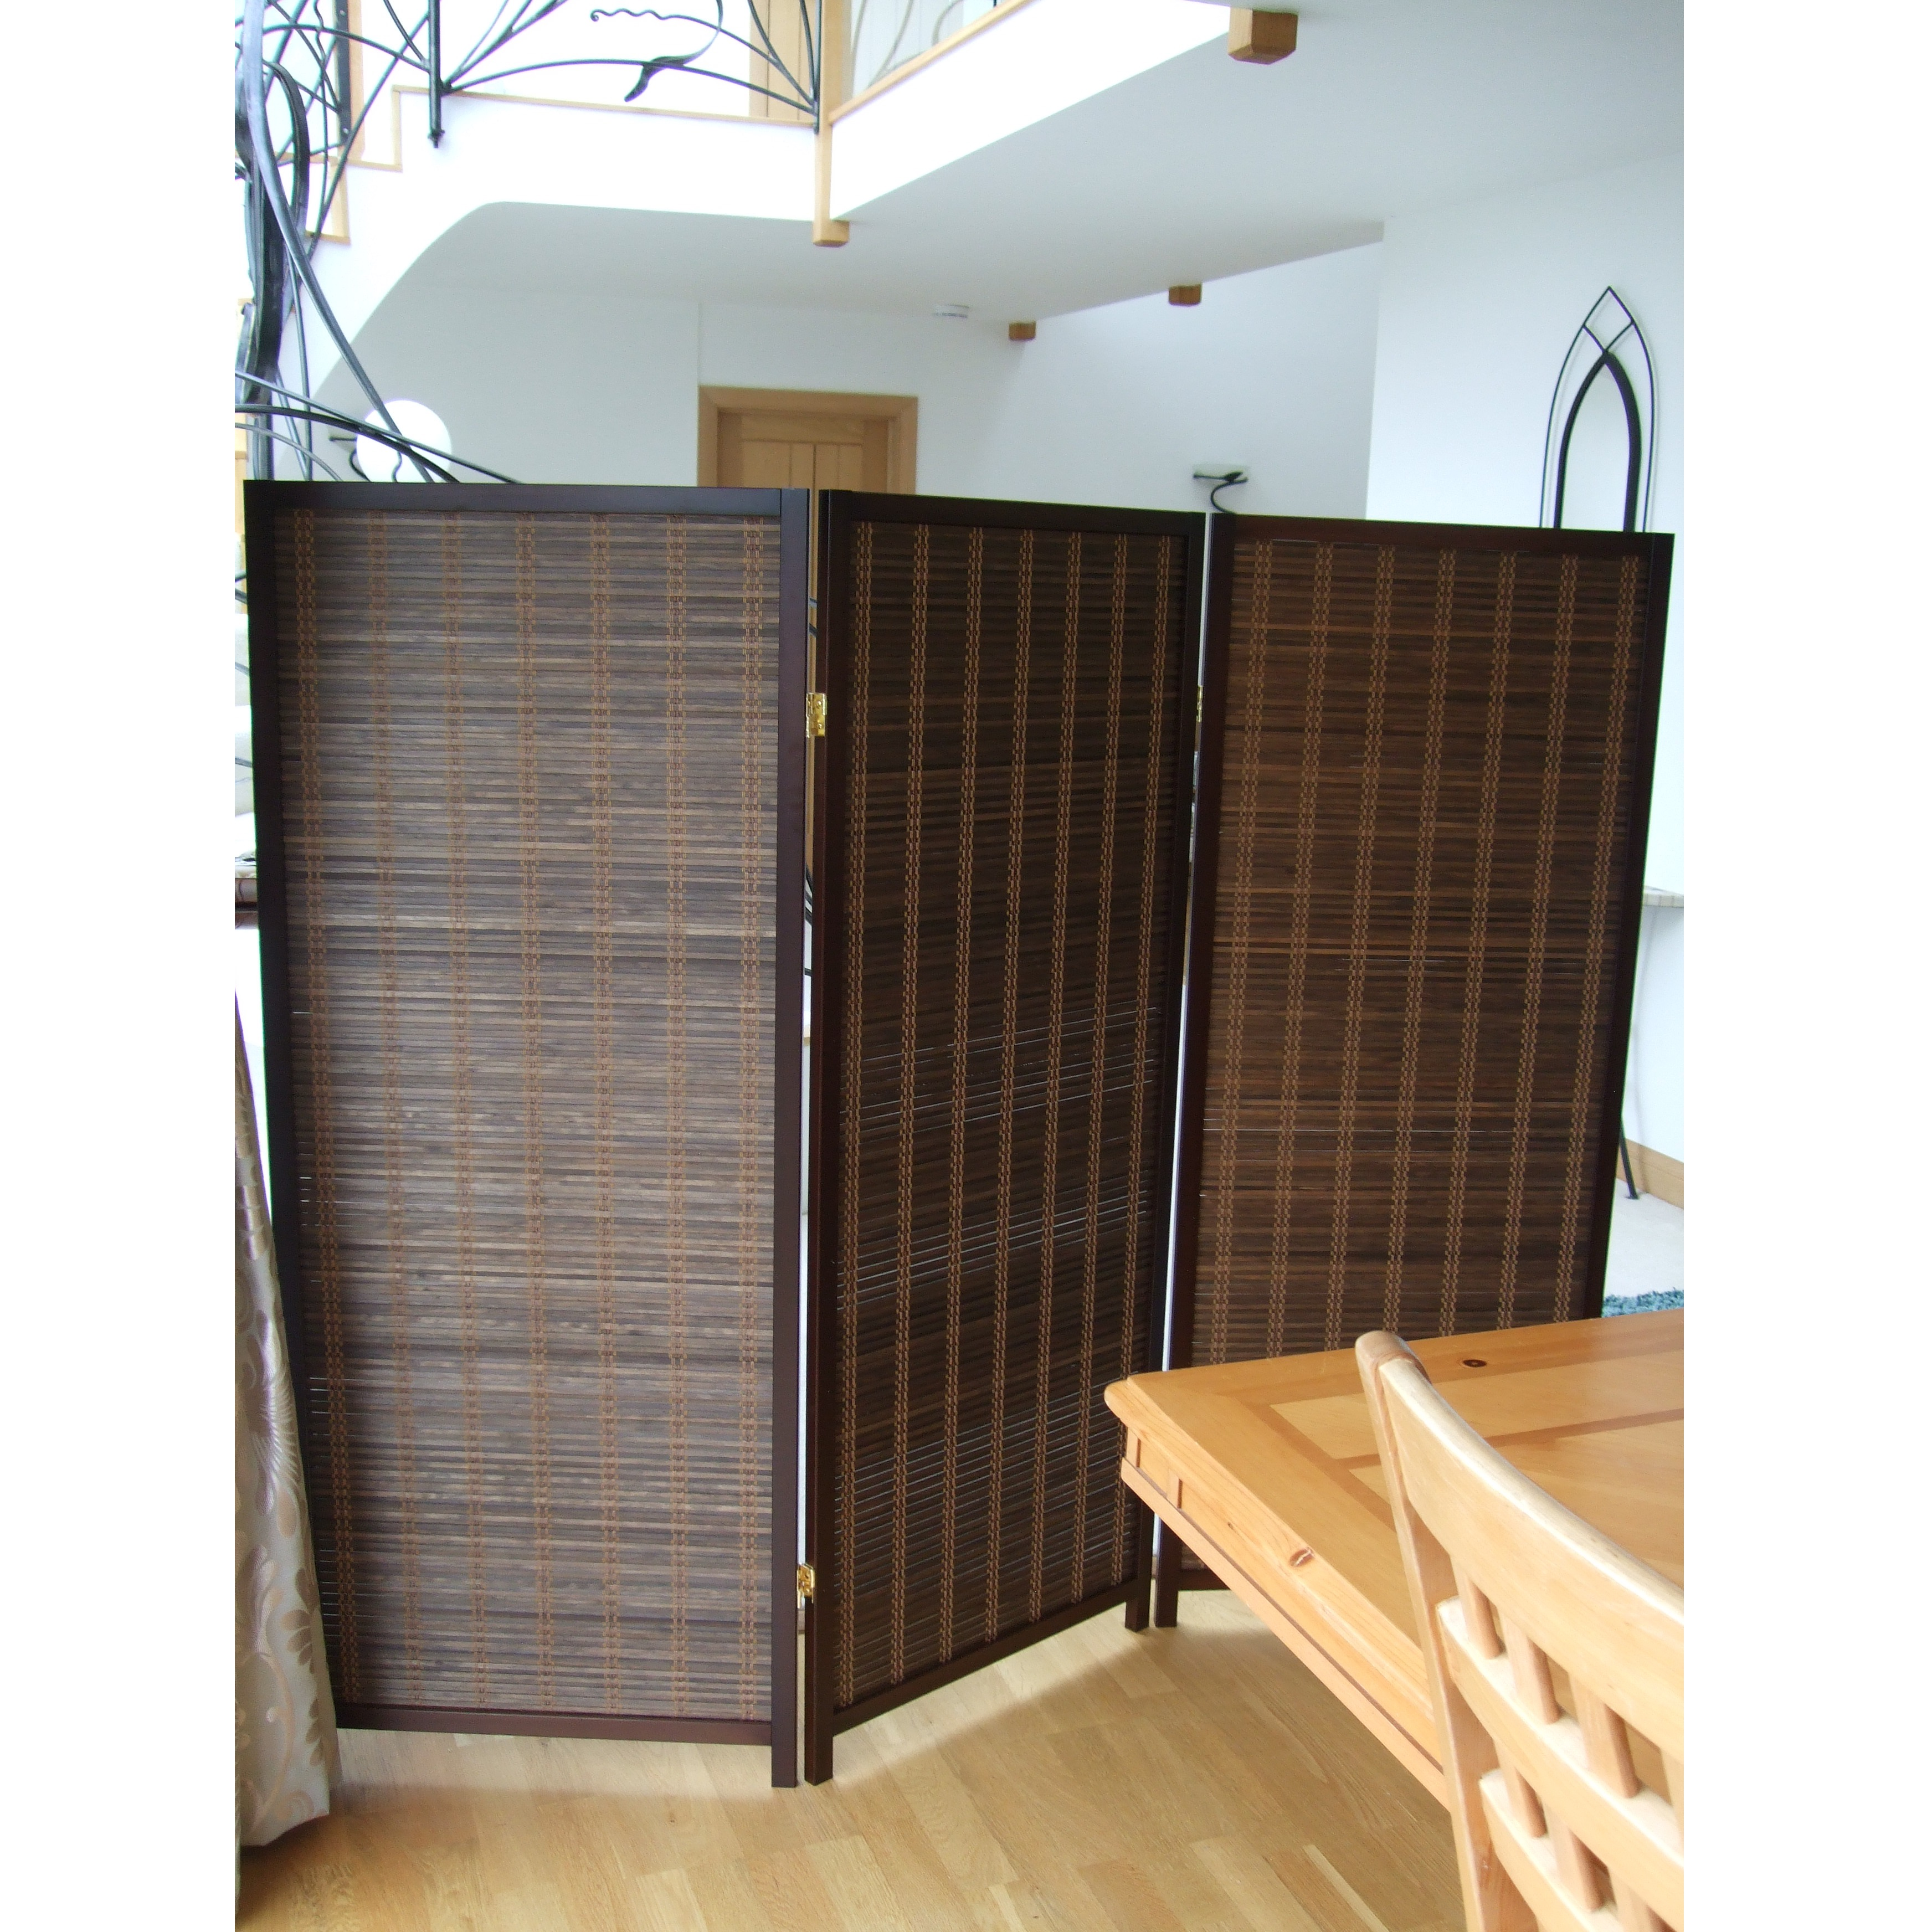 kochi  panel room divider or screen  the original screen company - kochi  panel room divider